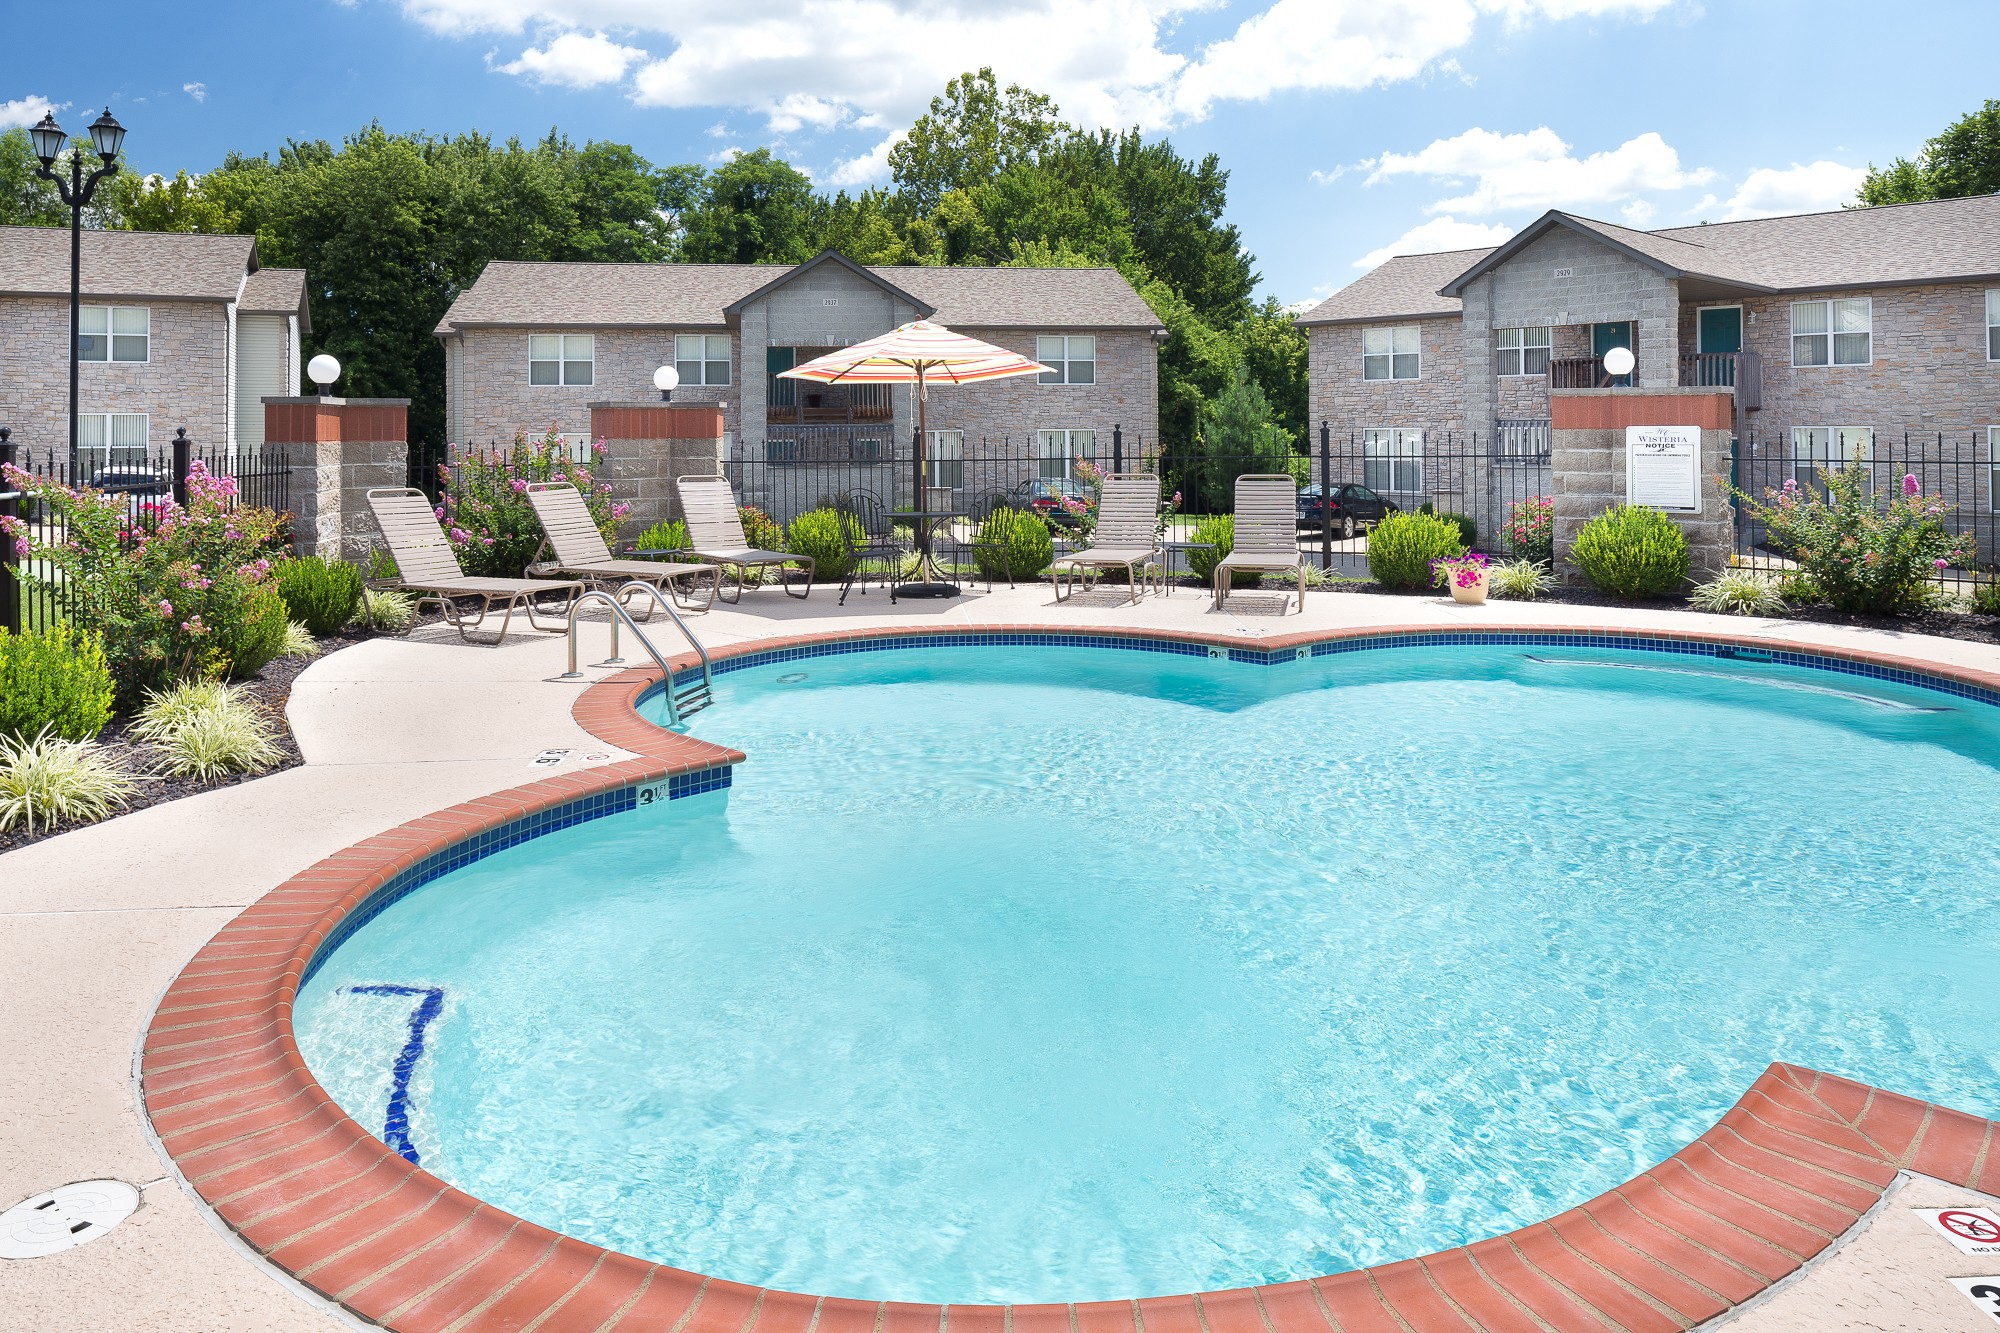 1451 Wisteria Ct 60 Belleville Il 62226 2 Bedroom Apartment For Rent For 809 Month Zumper